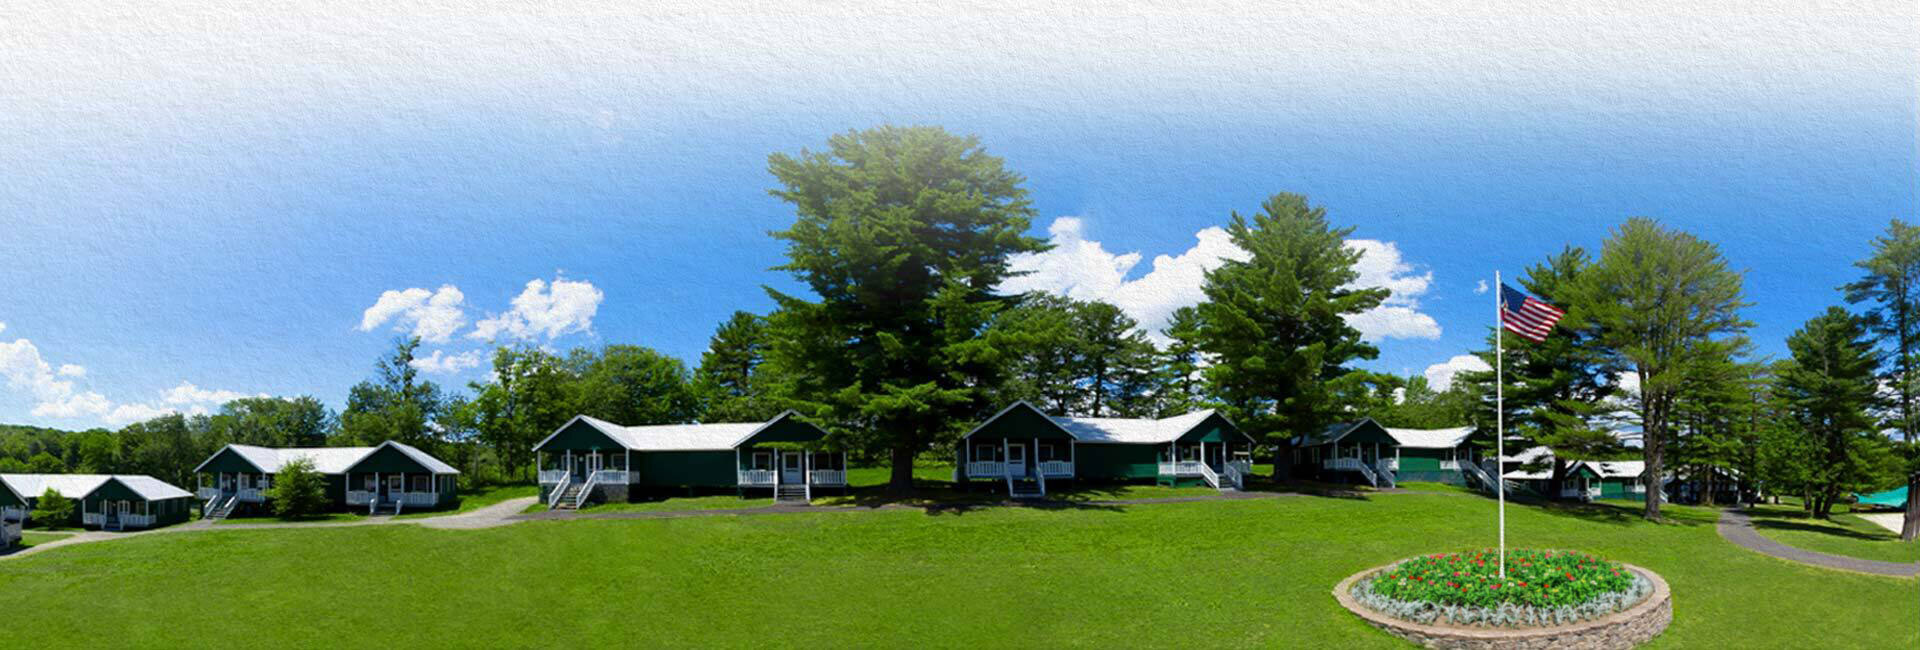 summer camp footer background photo